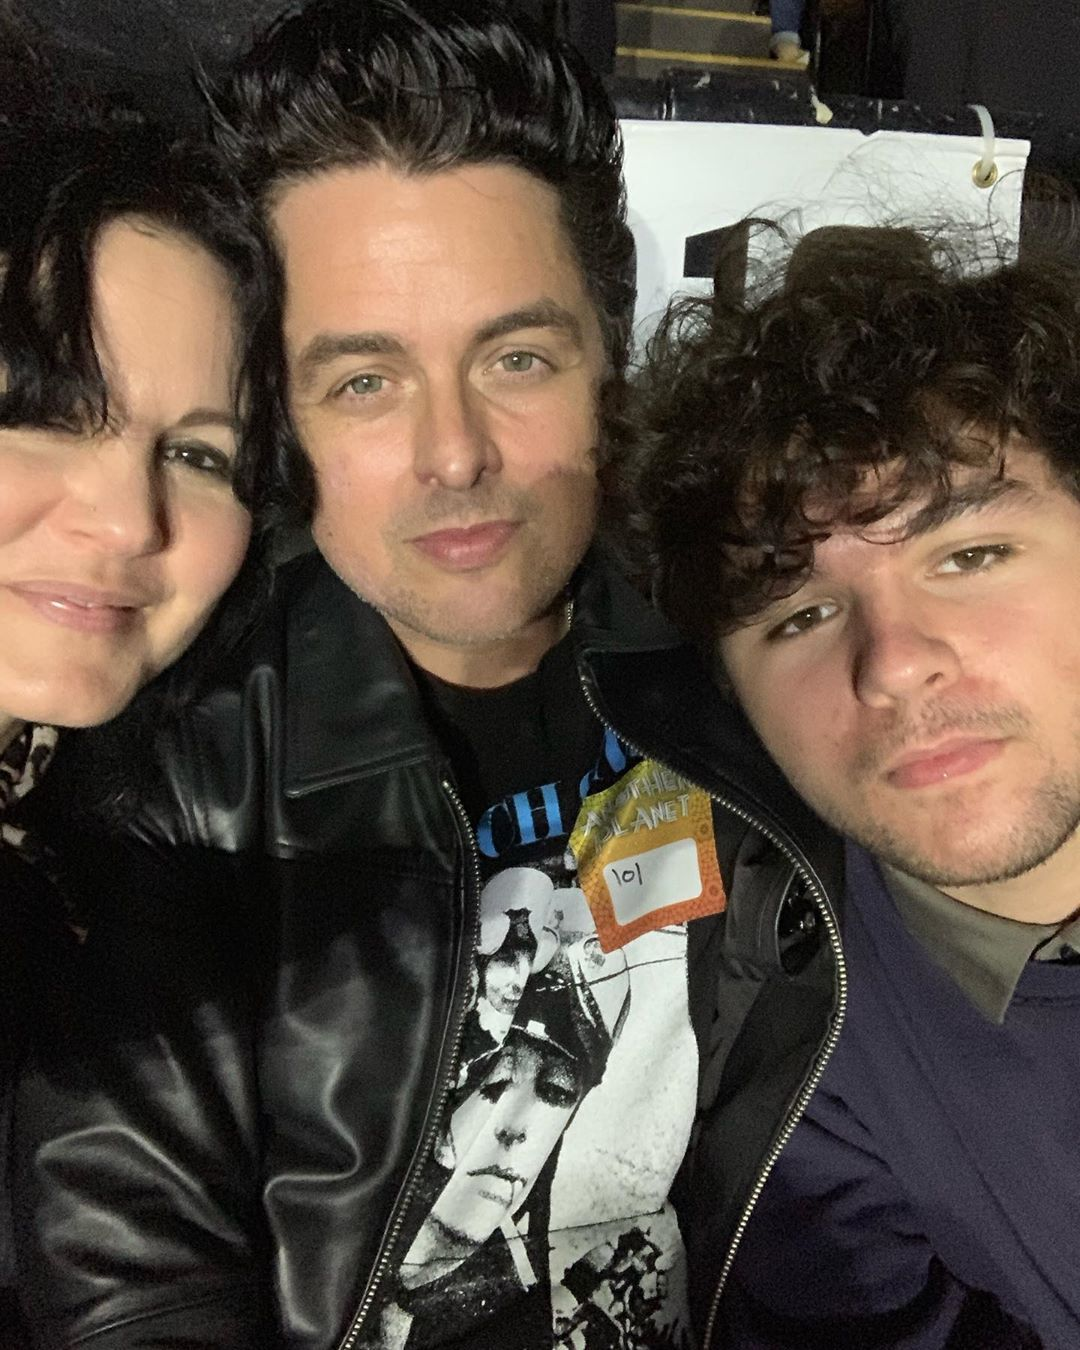 Billie Joe Armstrong On Instagram Night Out With These Loves